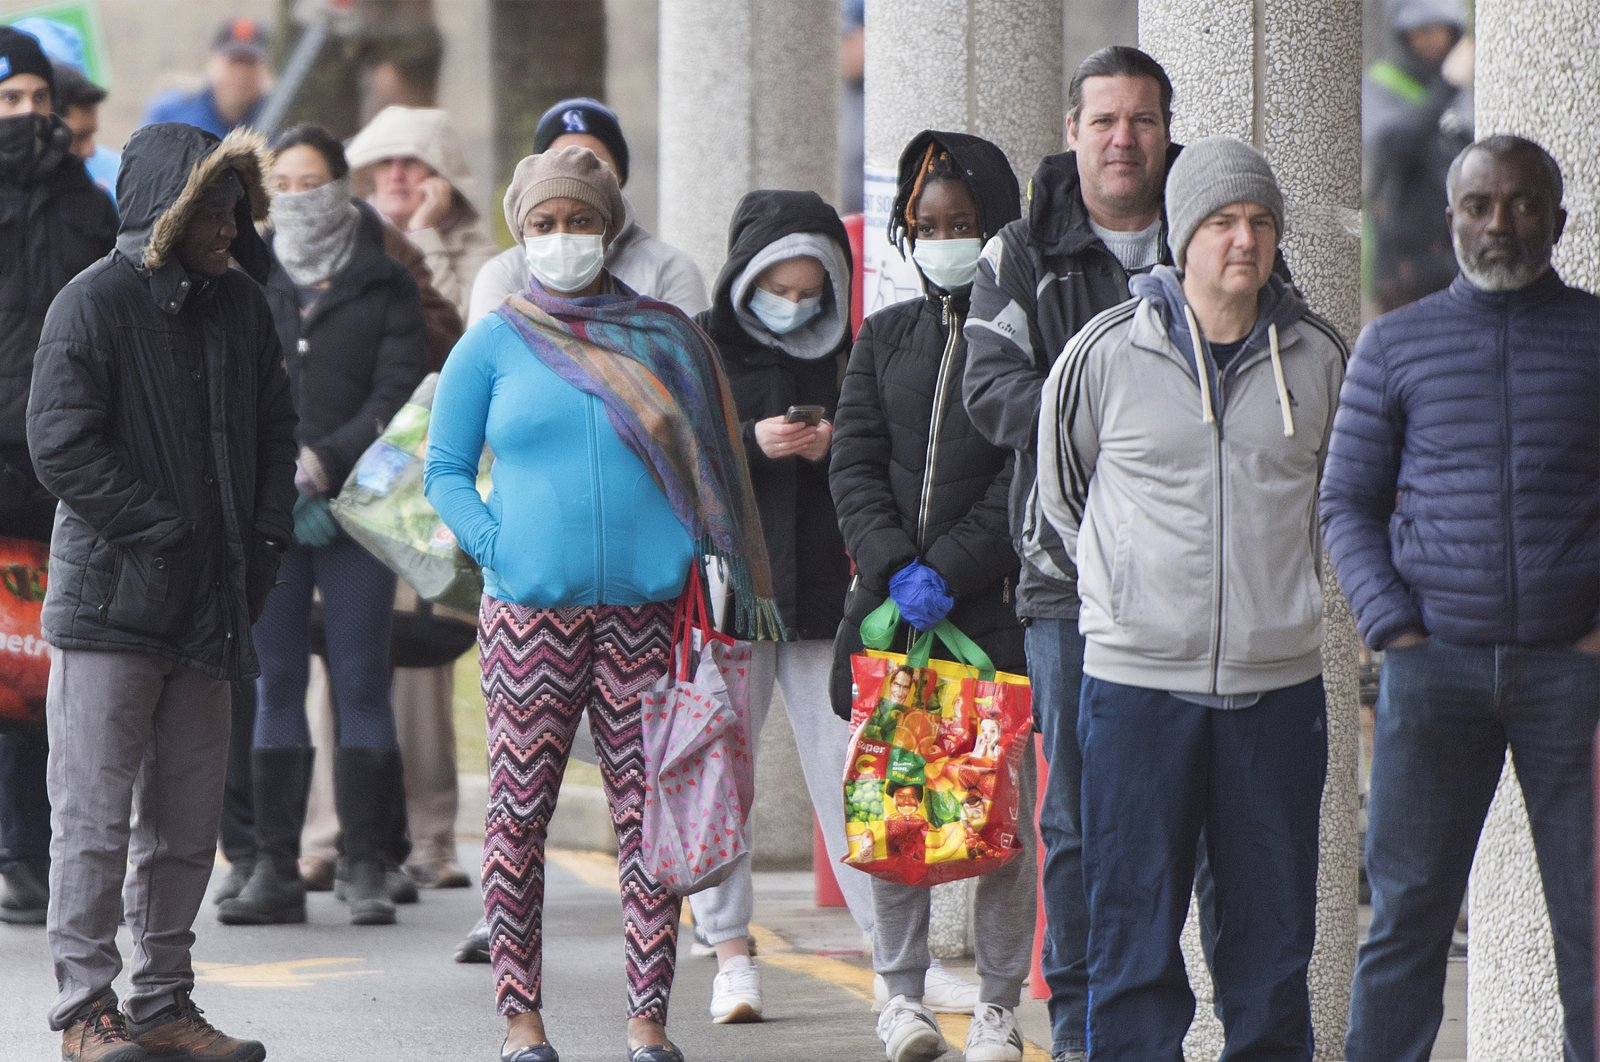 People wait in line to enter a Costco store during the COVID-19 pandemic in Montreal, Canada, April 10, 2020. (AP Photo)